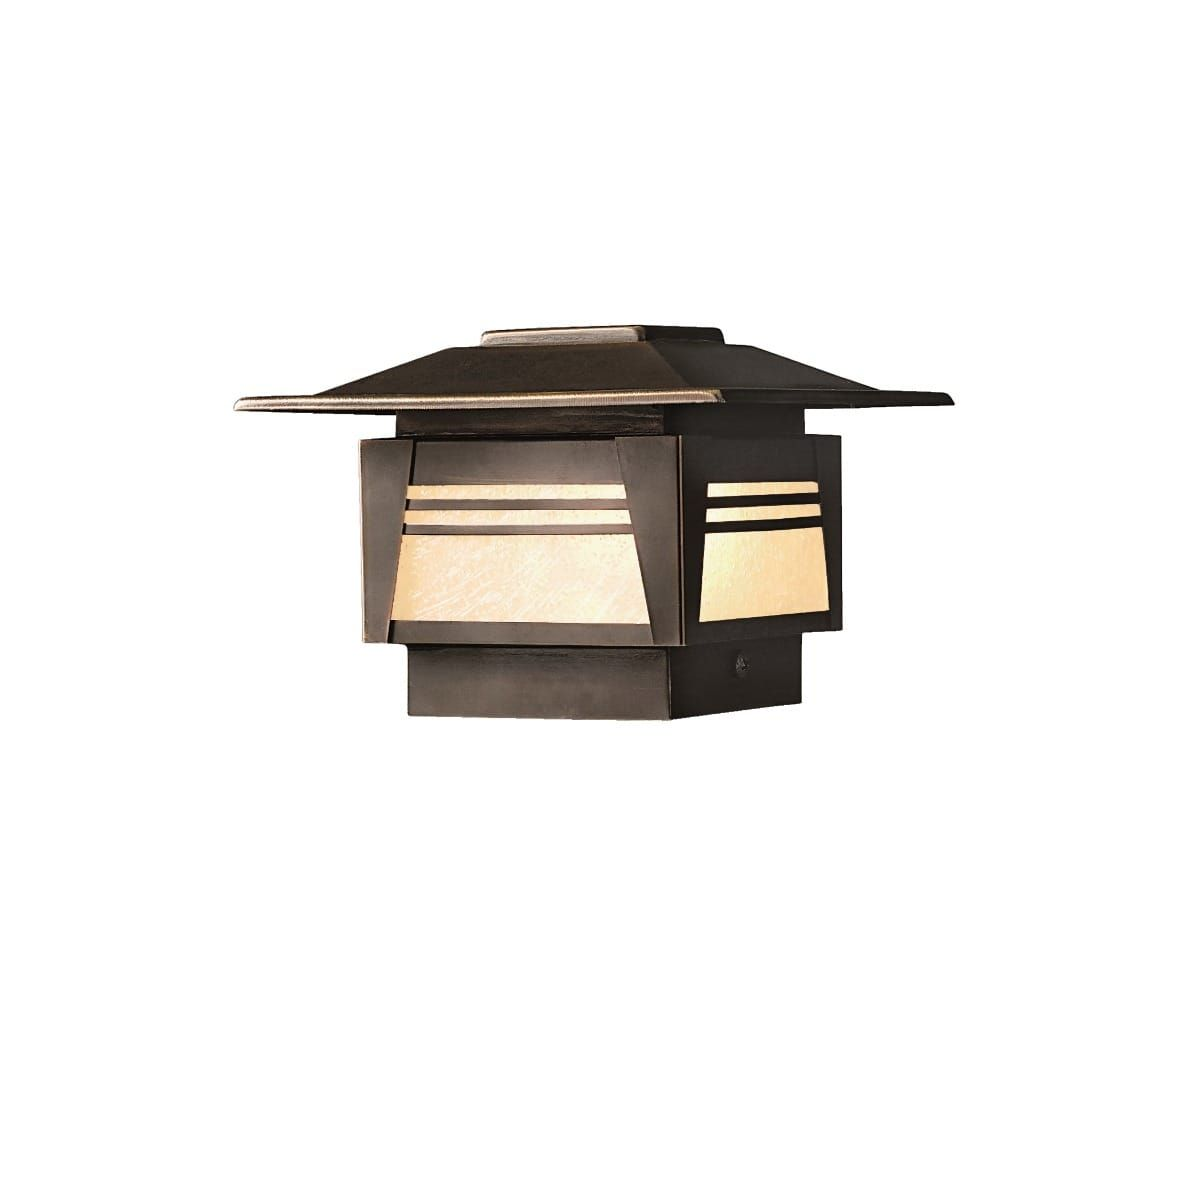 Kichler Zen Garden 7 12v Step Light In Olde Bronze Garden Post Lights Landscape Lighting Outdoor Lighting Landscape